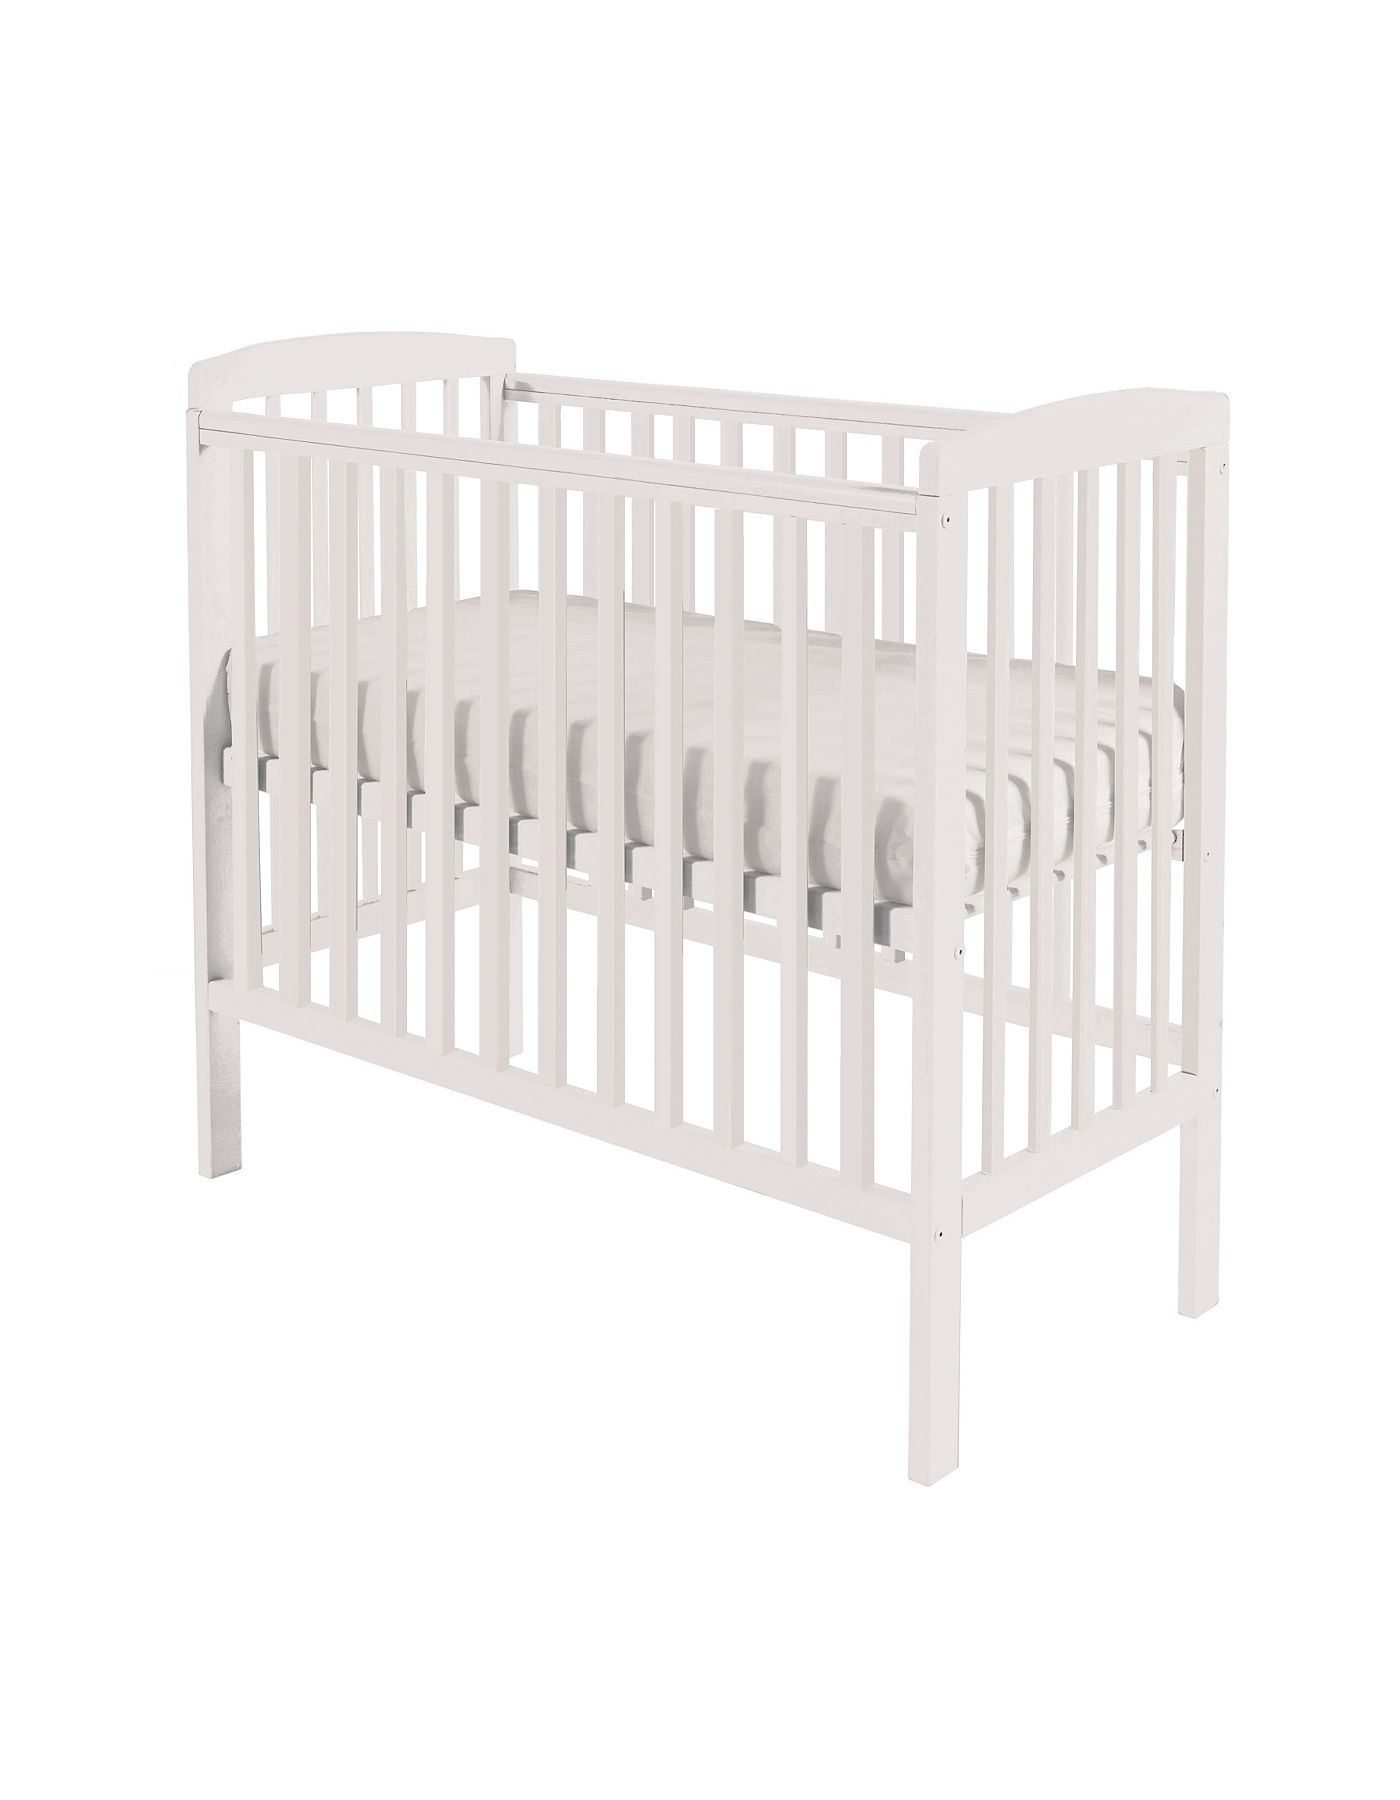 Kinder Valley Kai Compact Cot In White | Nursery Furniture ASDA Direct